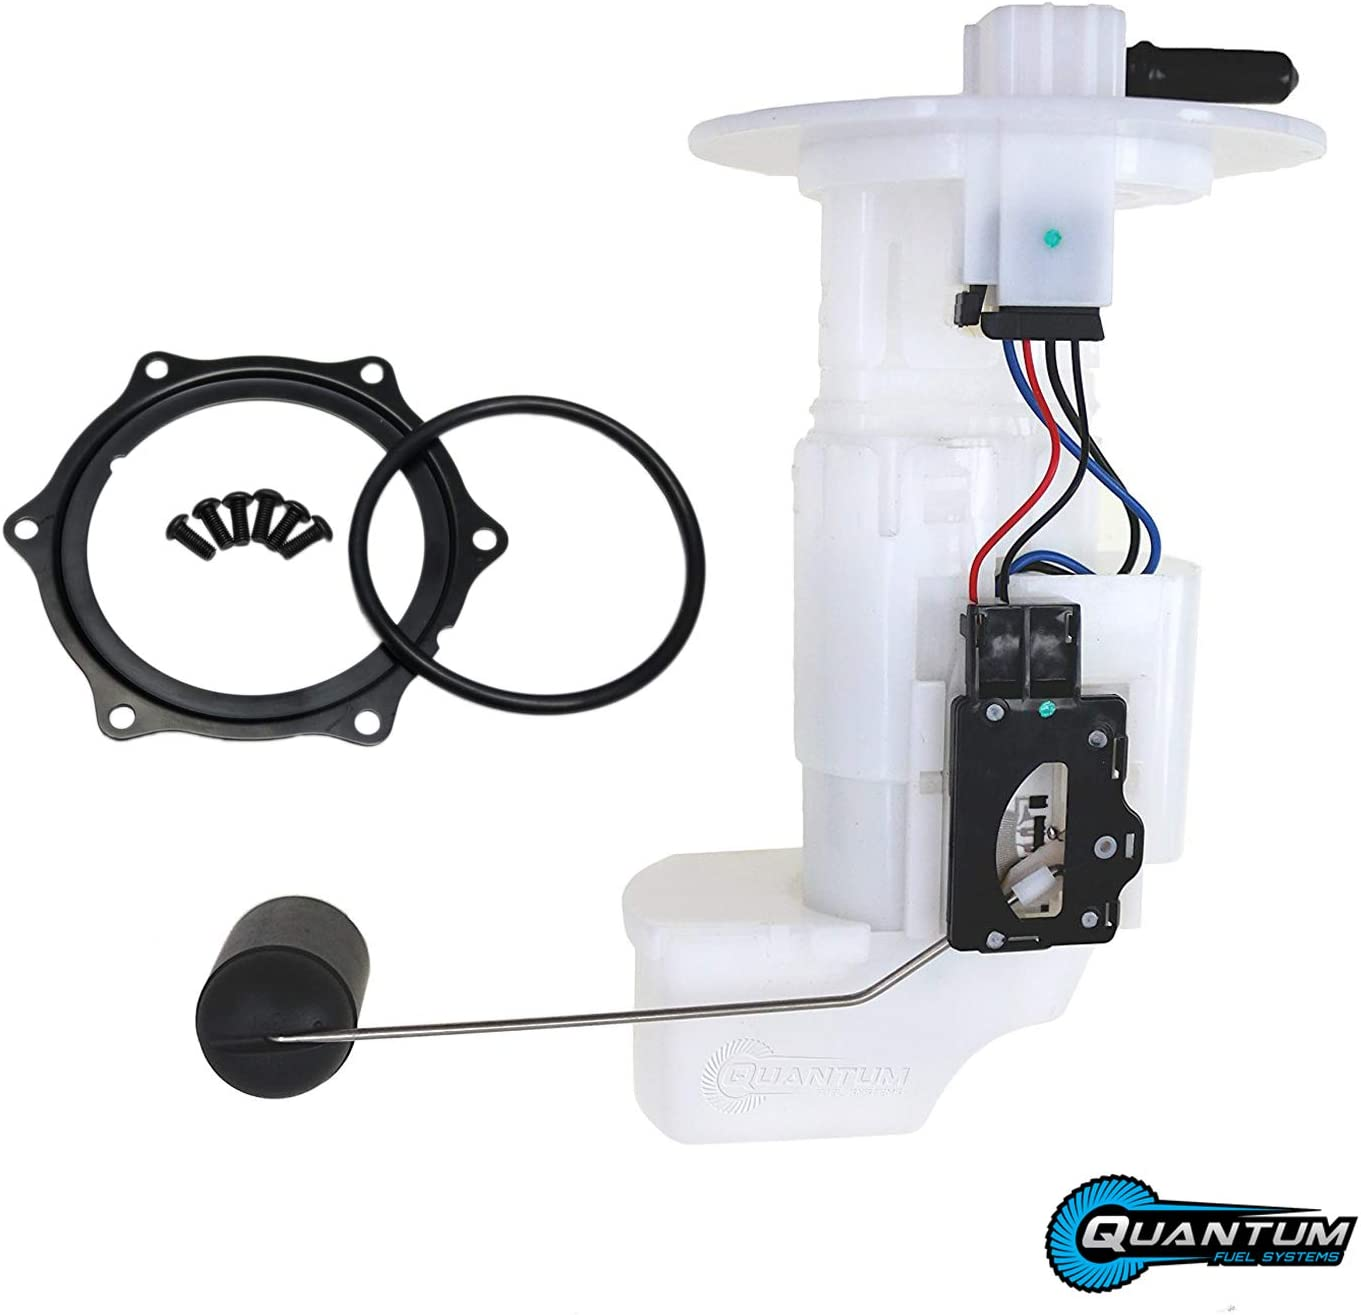 HFP-A487 Fuel Pump Assembly Replacement for Kawasaki Mule 4010 EFI (2009-2019) Replaces 449040-0719, 49040-0718, 49019-0013